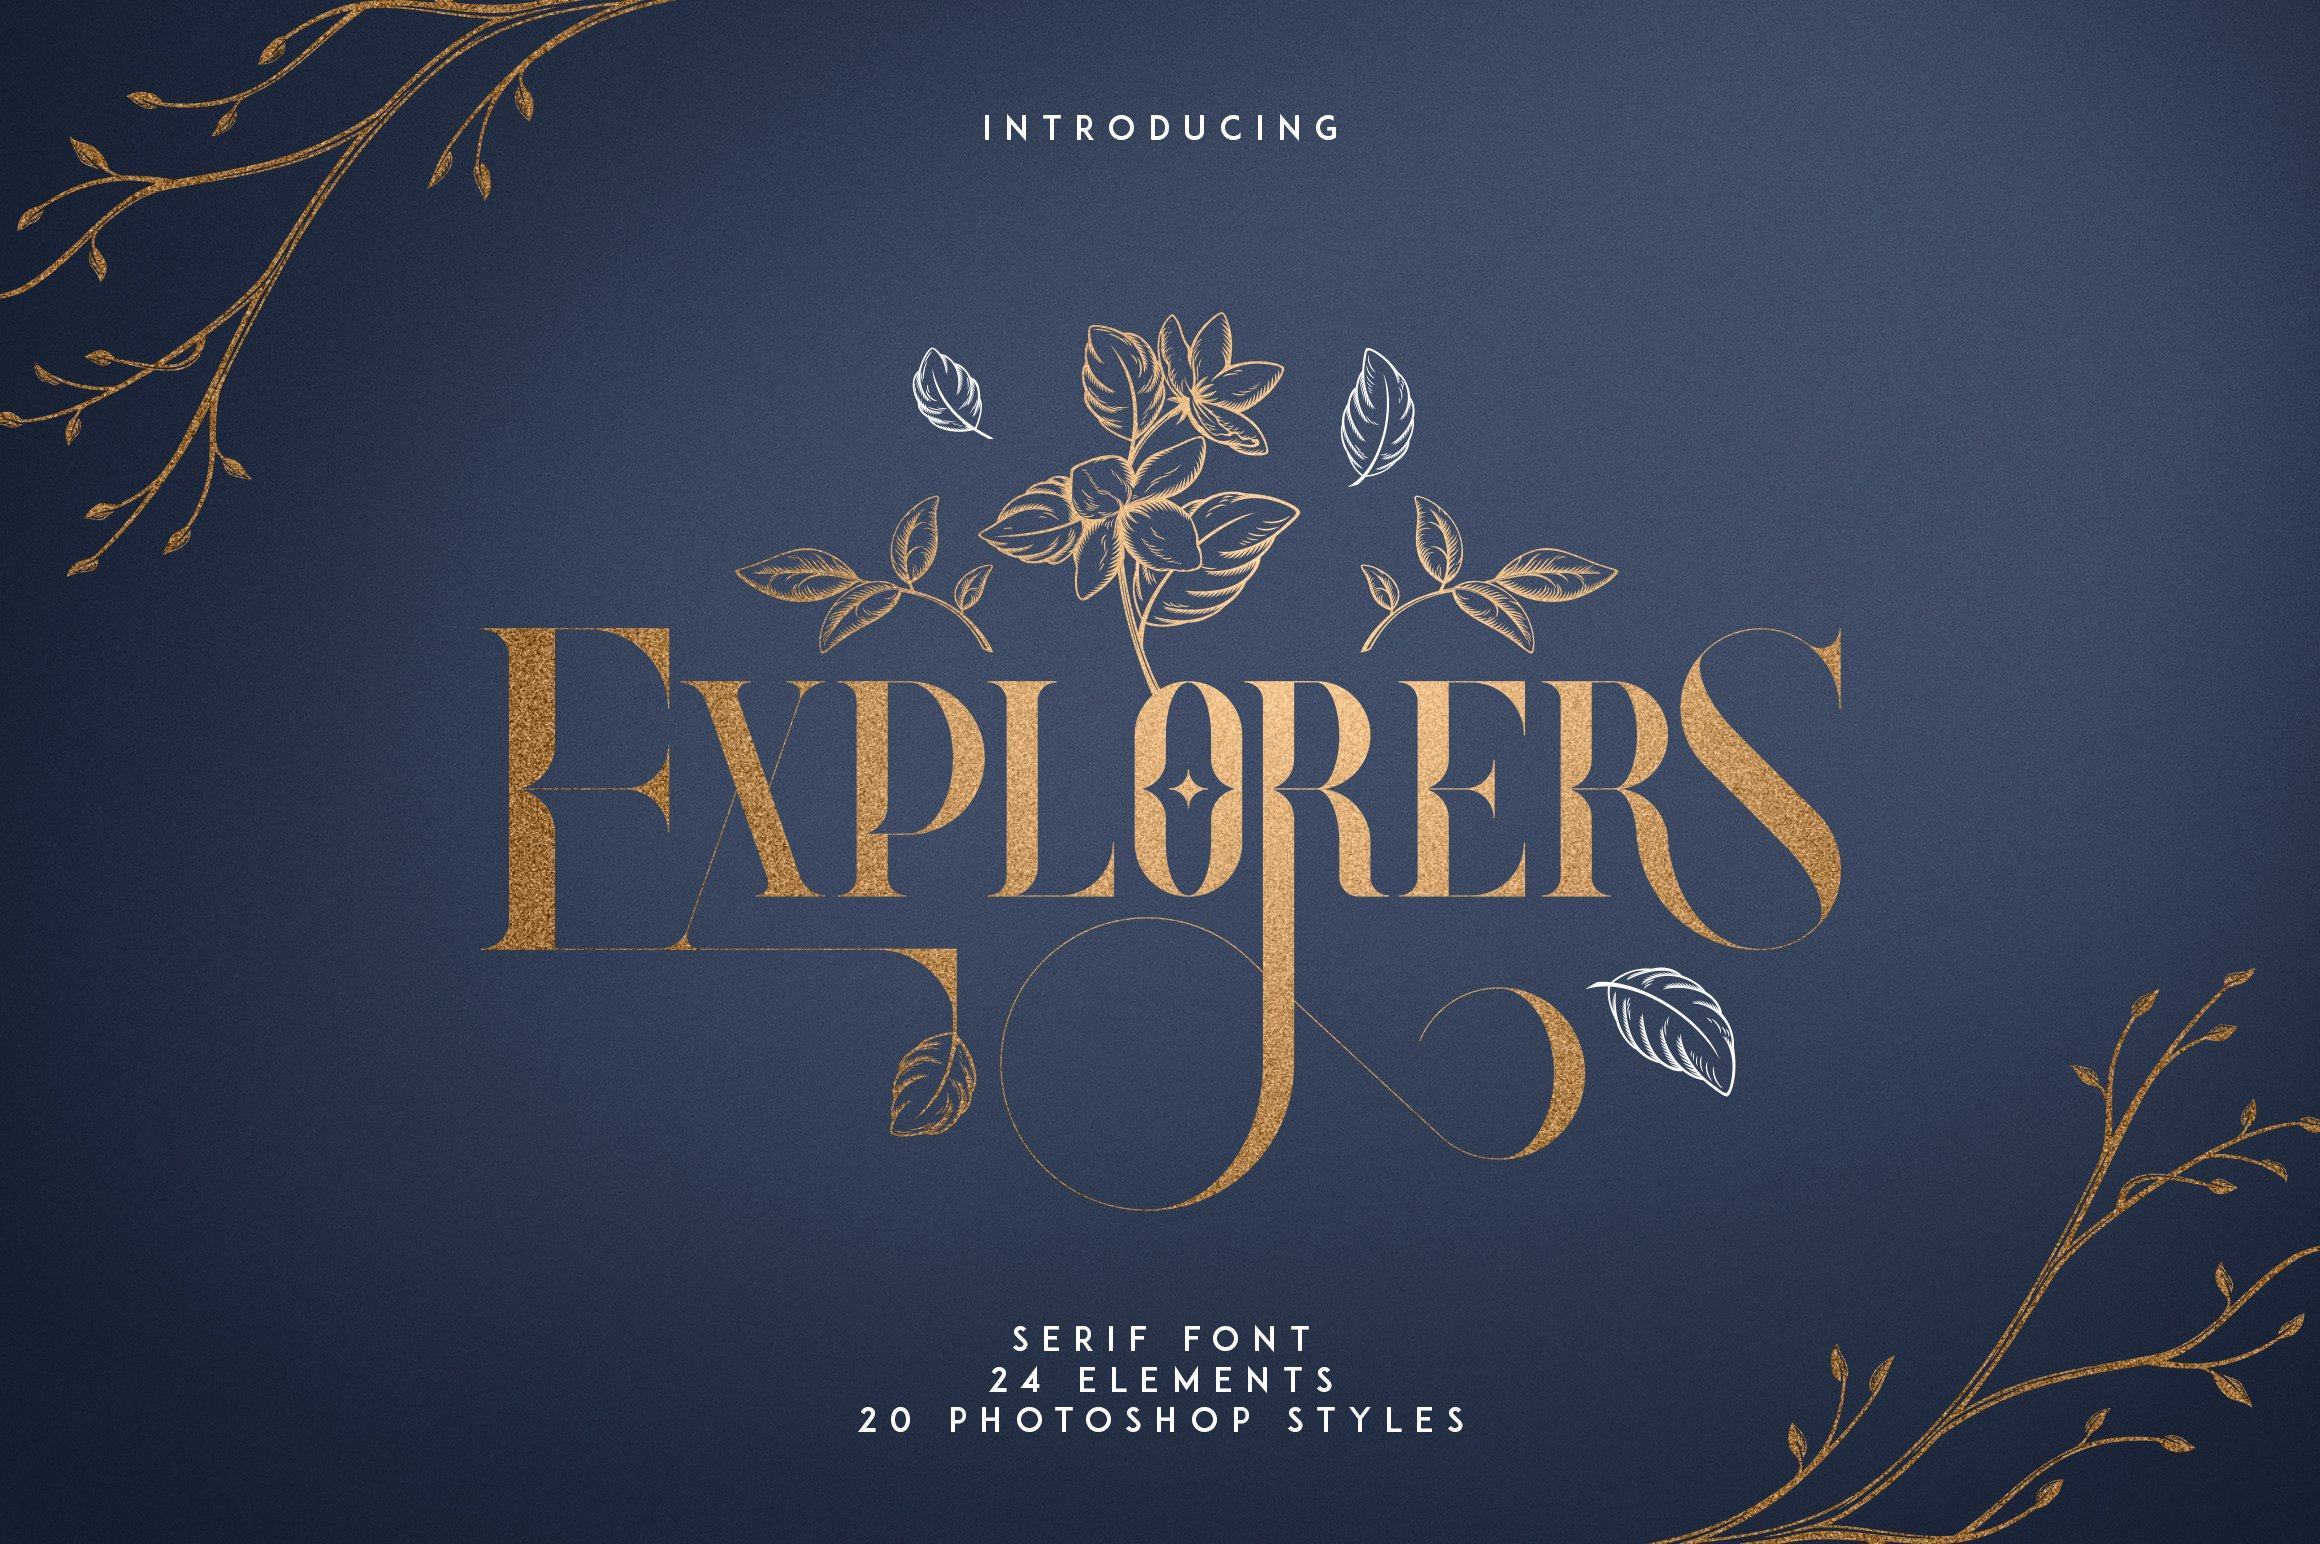 Bestseller font collection 6 typefaces in 1 example image 16